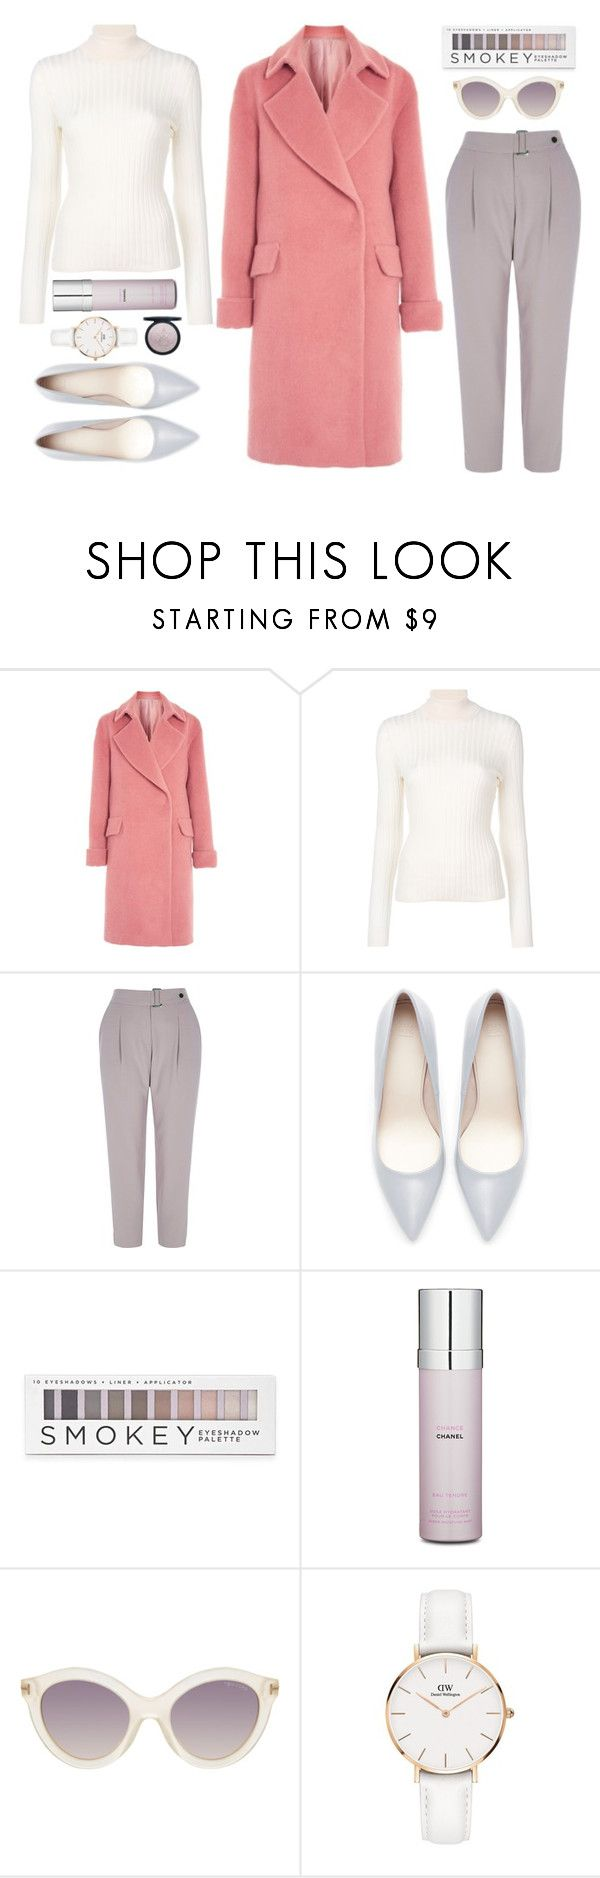 """""""Fuzzy Coat"""" by styleskater7 ❤ liked on Polyvore featuring Topshop, Gucci, River Island, Zara, Forever 21, Chanel, Tom Ford, Daniel Wellington, Winter and Heels"""